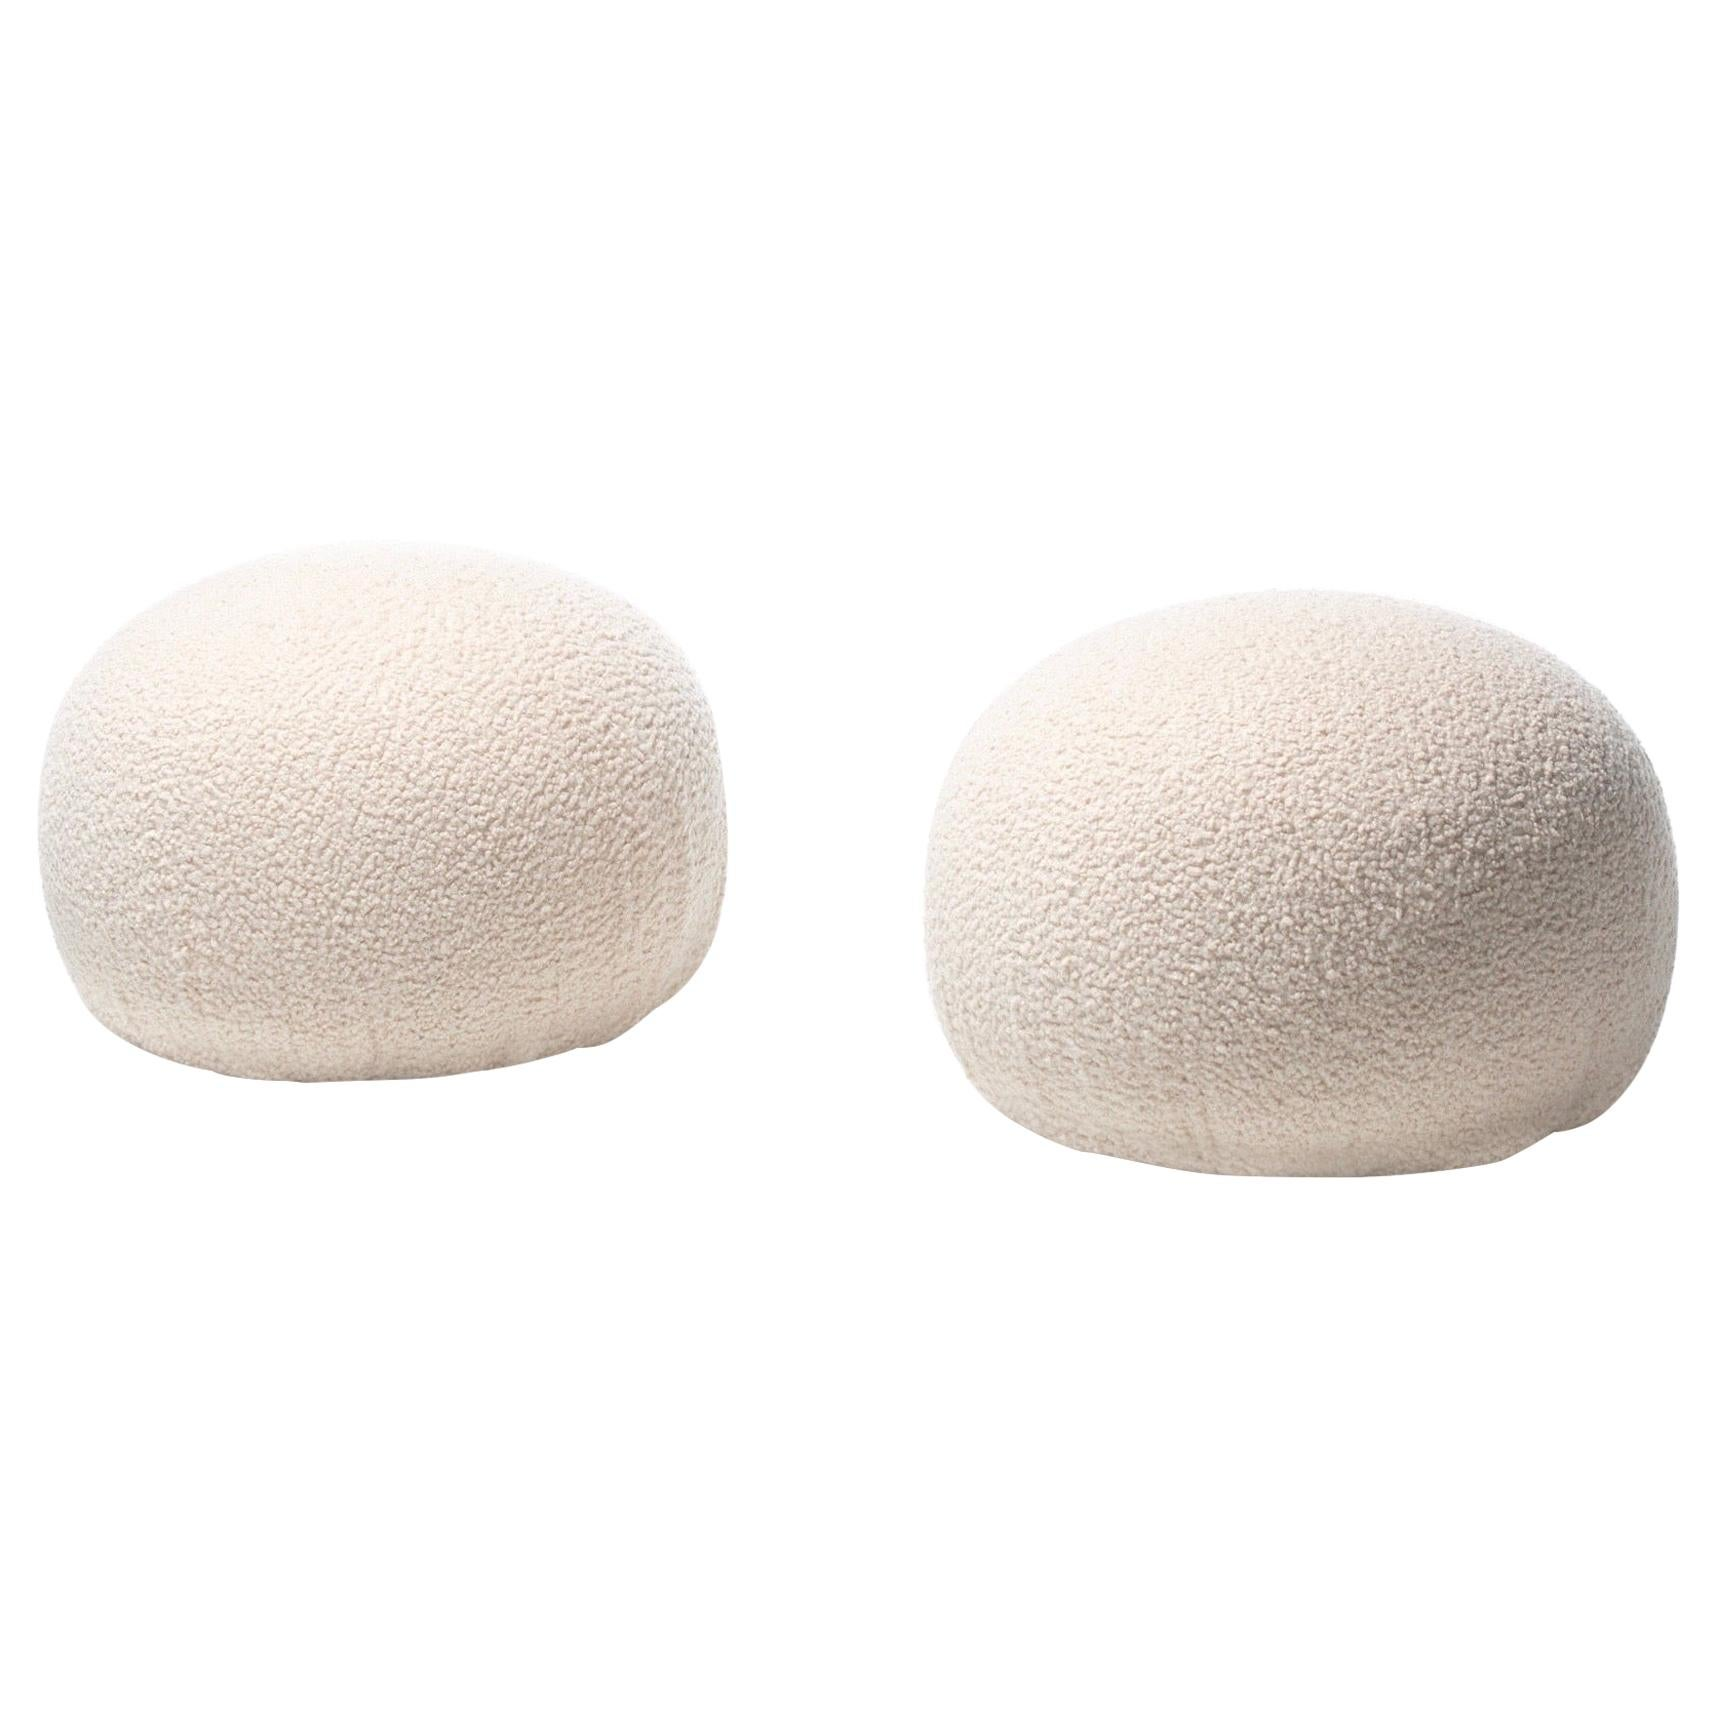 Pair of Directional Poufs Ottomans in Ivory white Bouclé